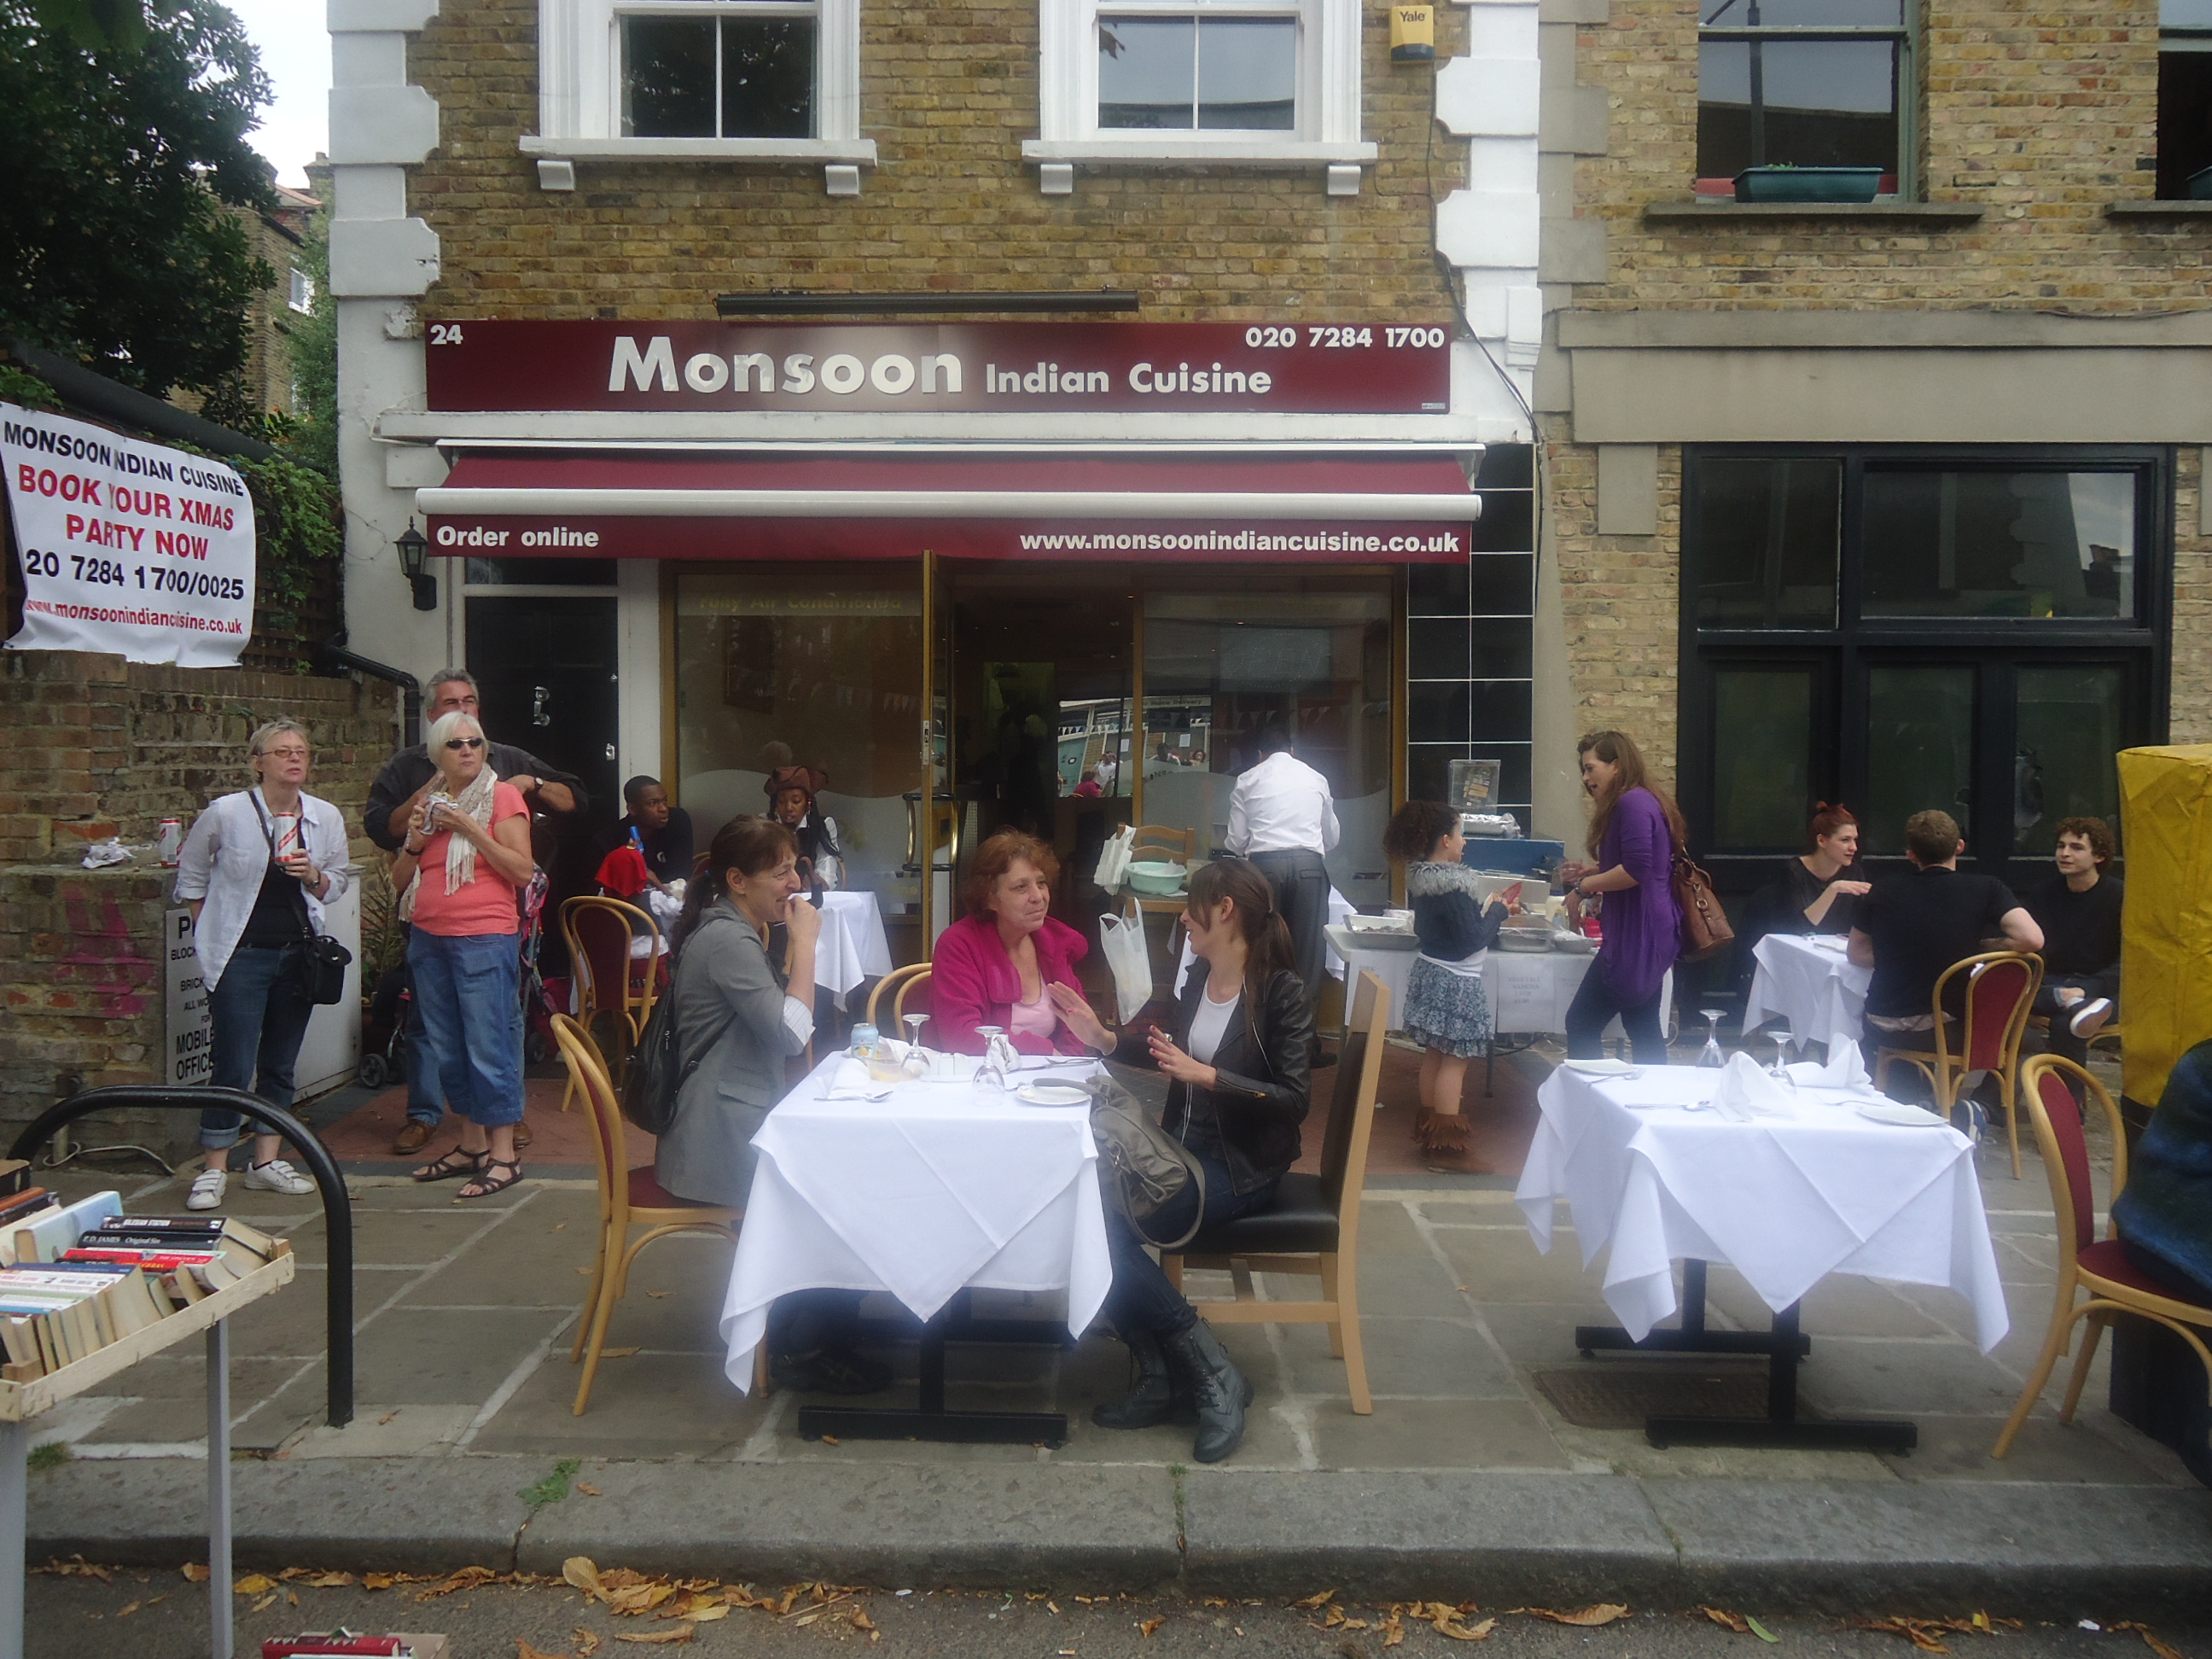 Monsoon Indian Restaurant - London